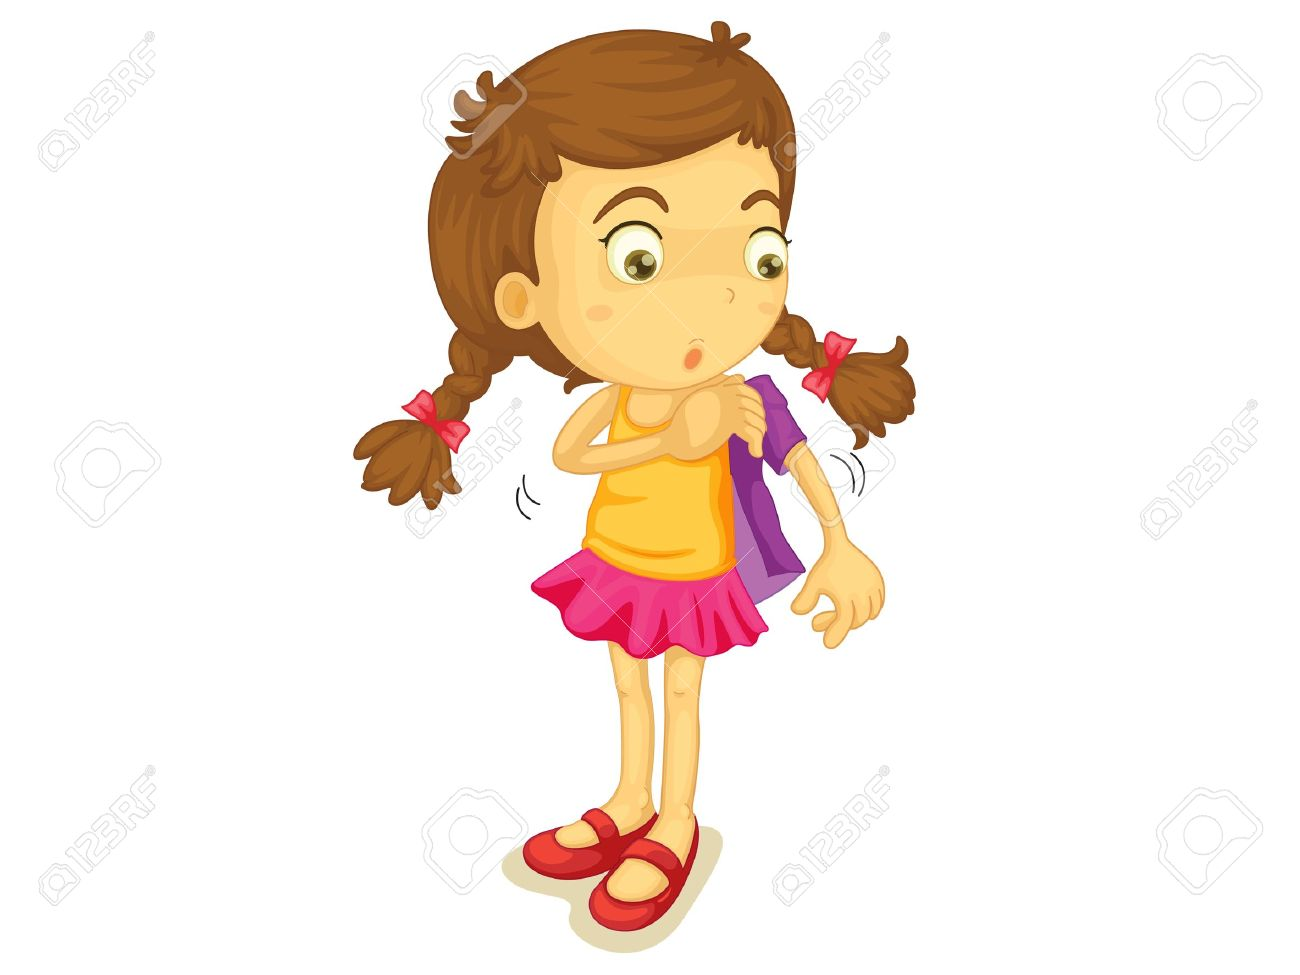 102917 Girl free clipart.